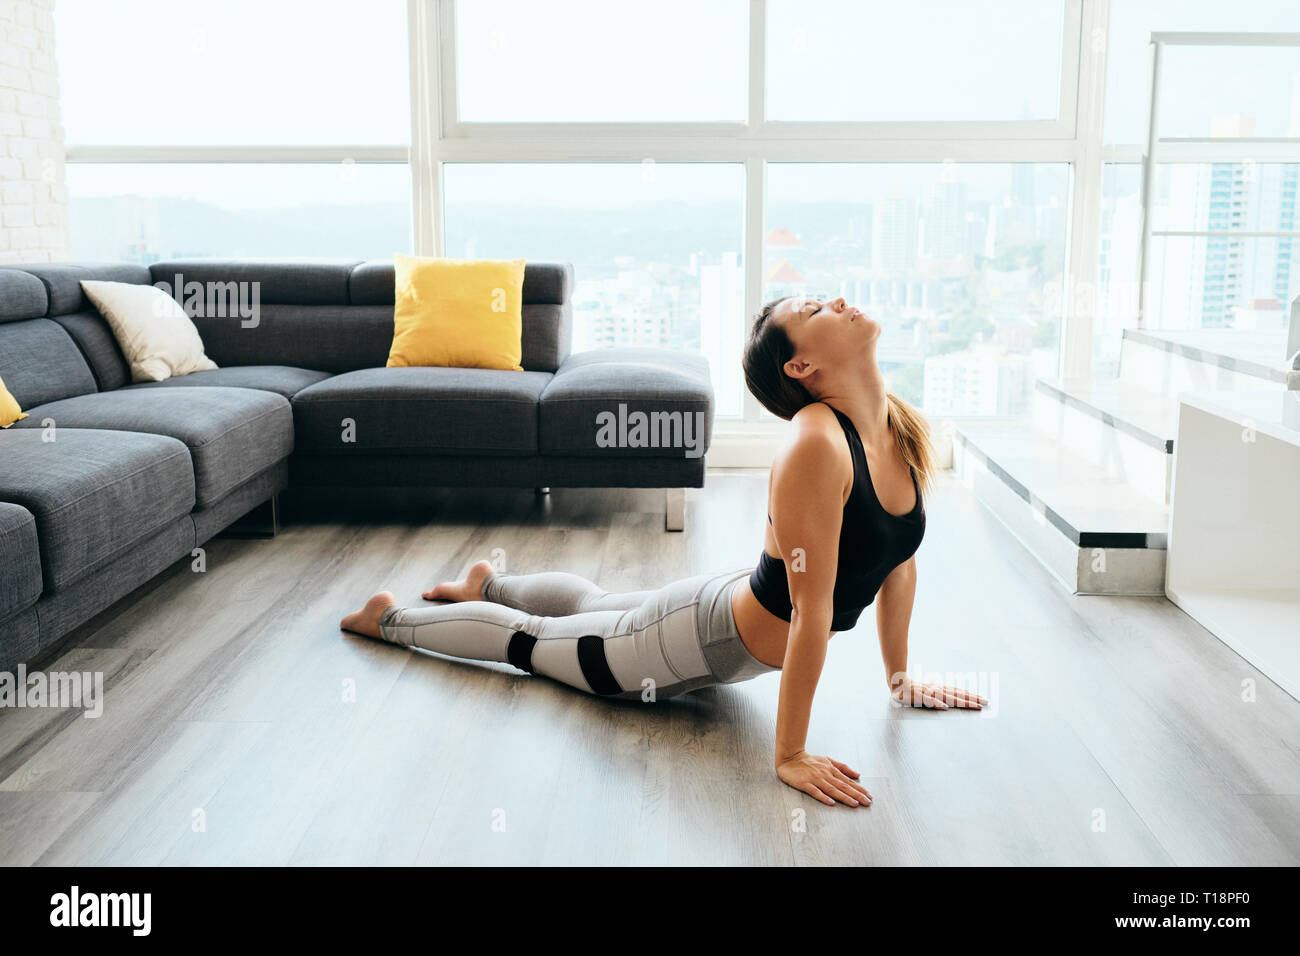 Woman Practicing Yoga At Home Doing Sun Salutation Routine - Stock Image